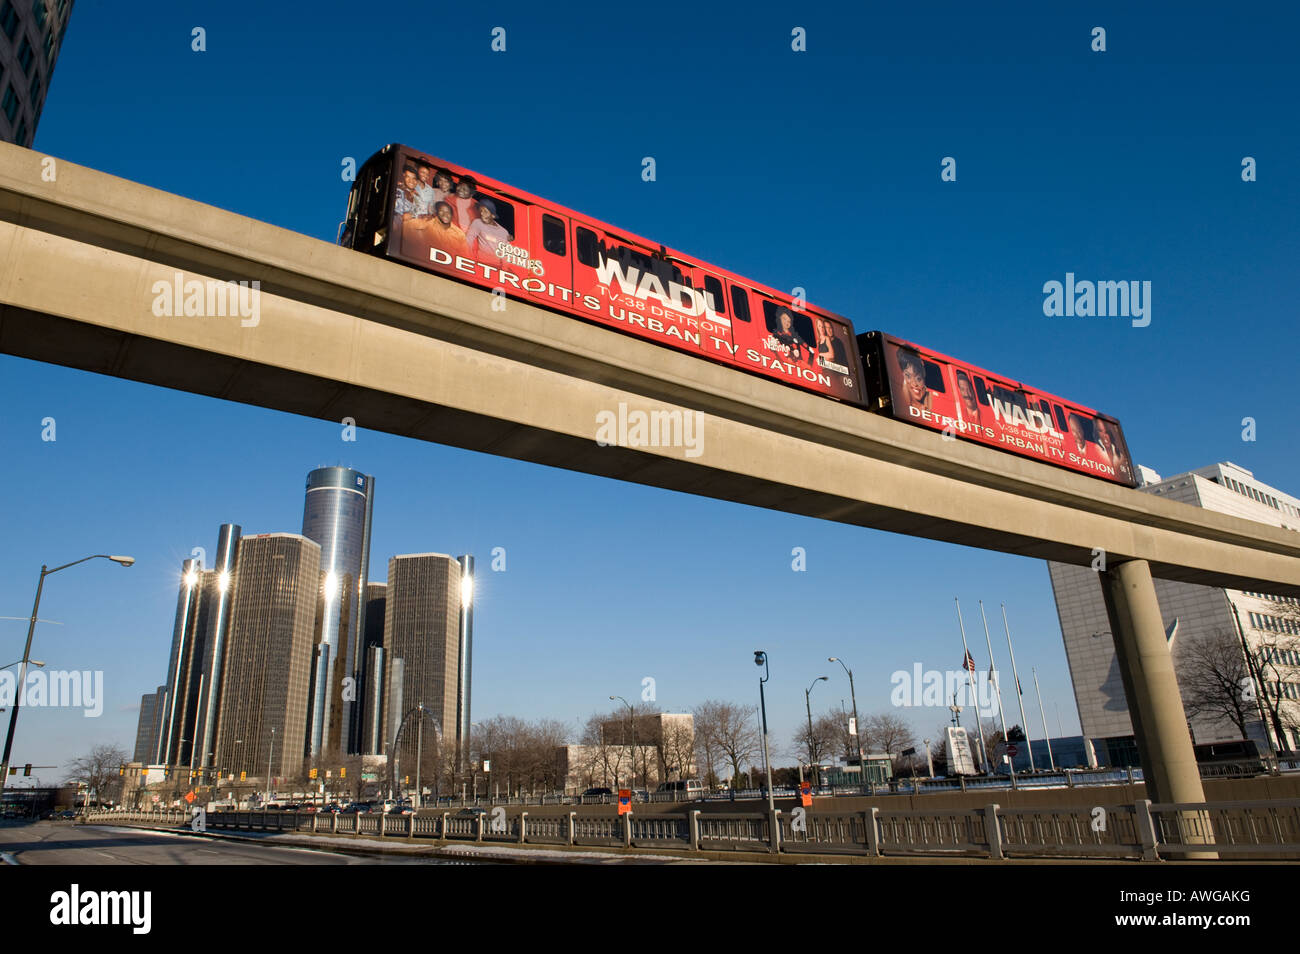 Detroit People Mover with the Renaissance Center - Stock Image